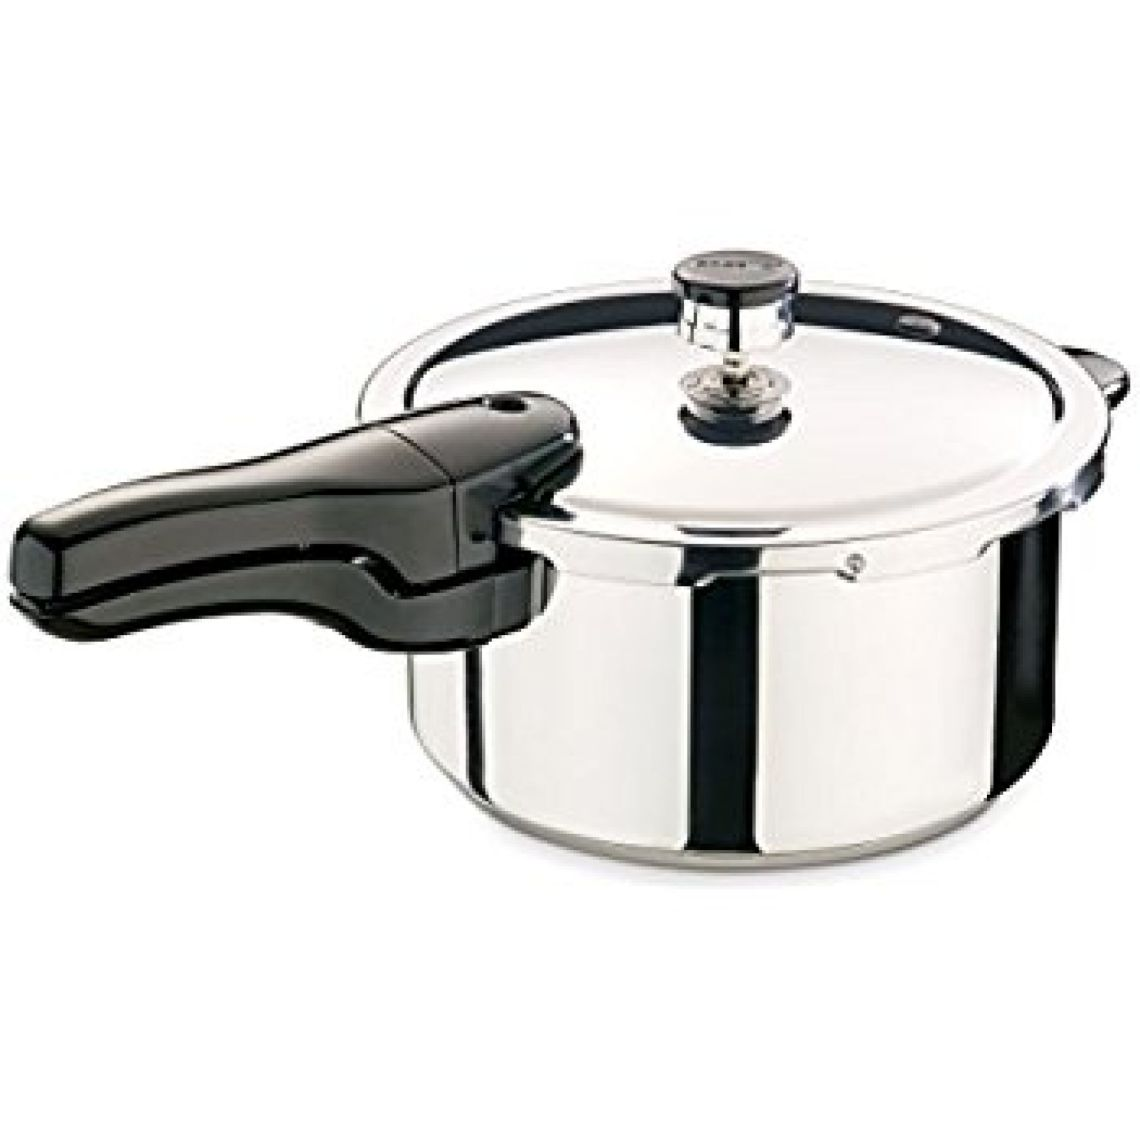 Amazon.com: Presto 01341 4-Quart Stainless Steel Pressure Cooker: Kitchen & Dining